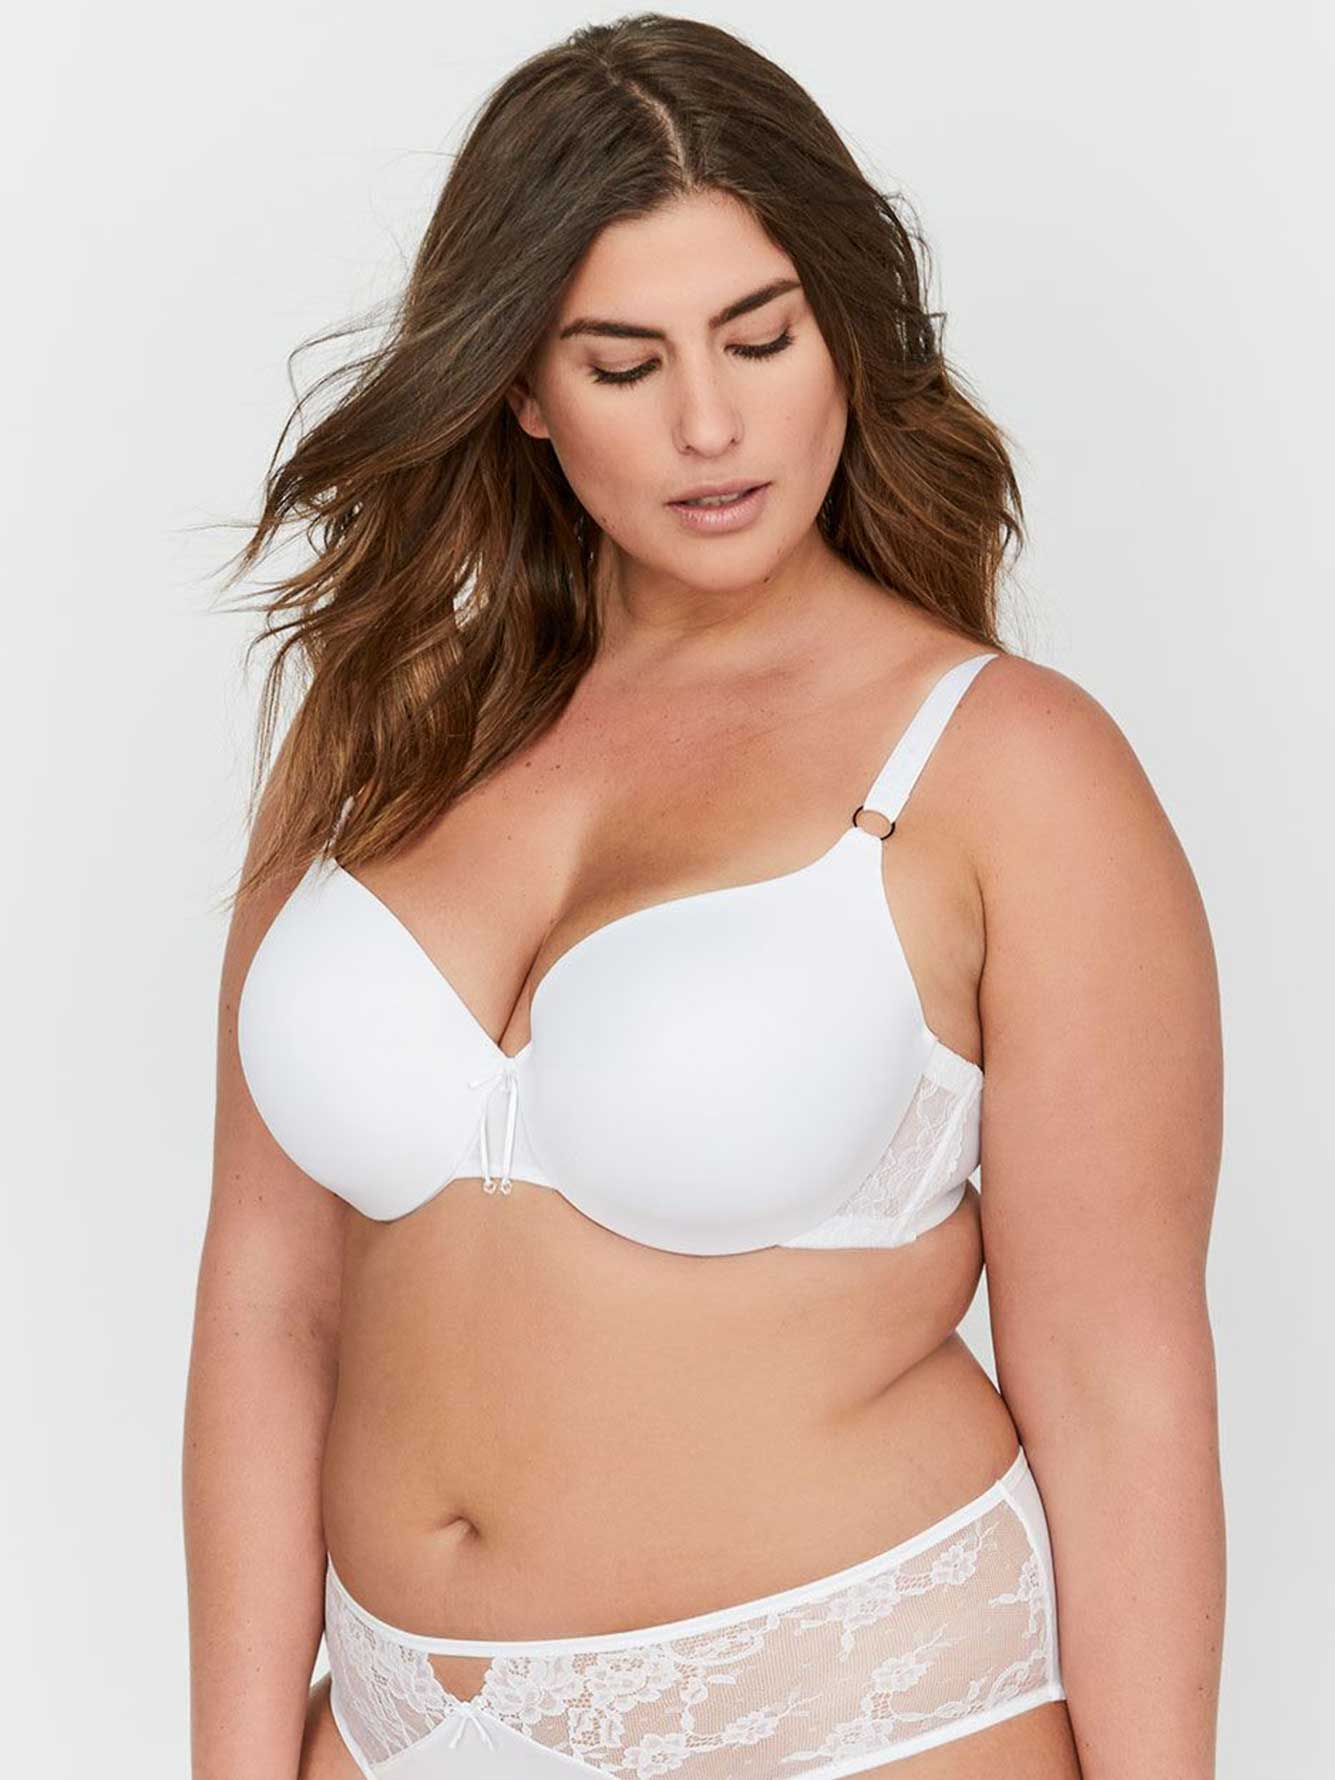 Ashley Graham Essentials Icon T-shirt Bra with Lace & Thin Micro Fiber, Size G & H